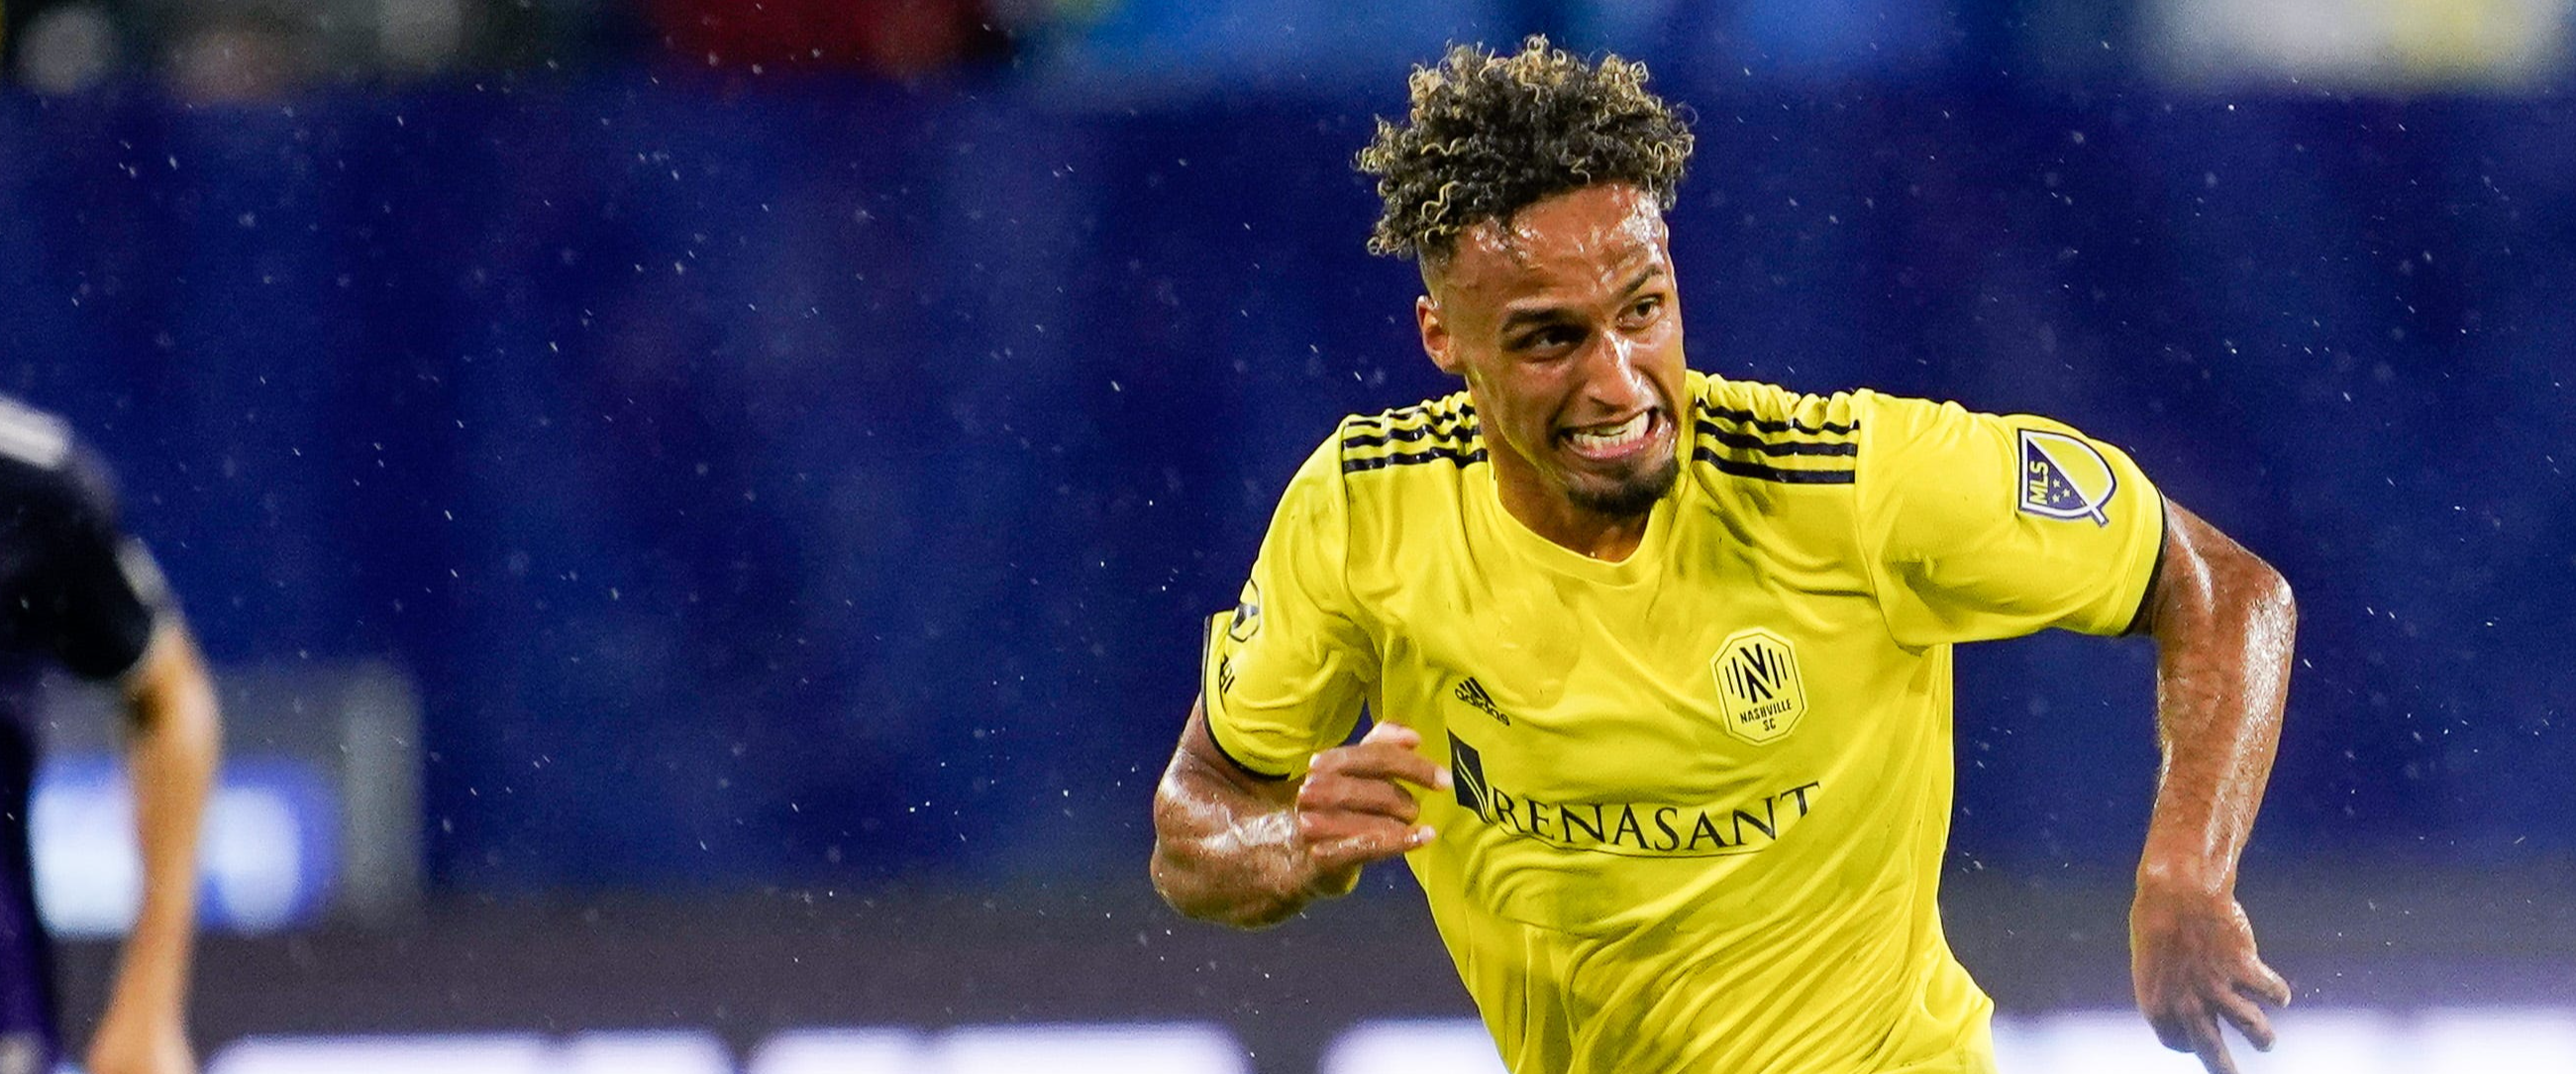 Nashville SC: Could Hany Mukhtar be snatched up by a European club?